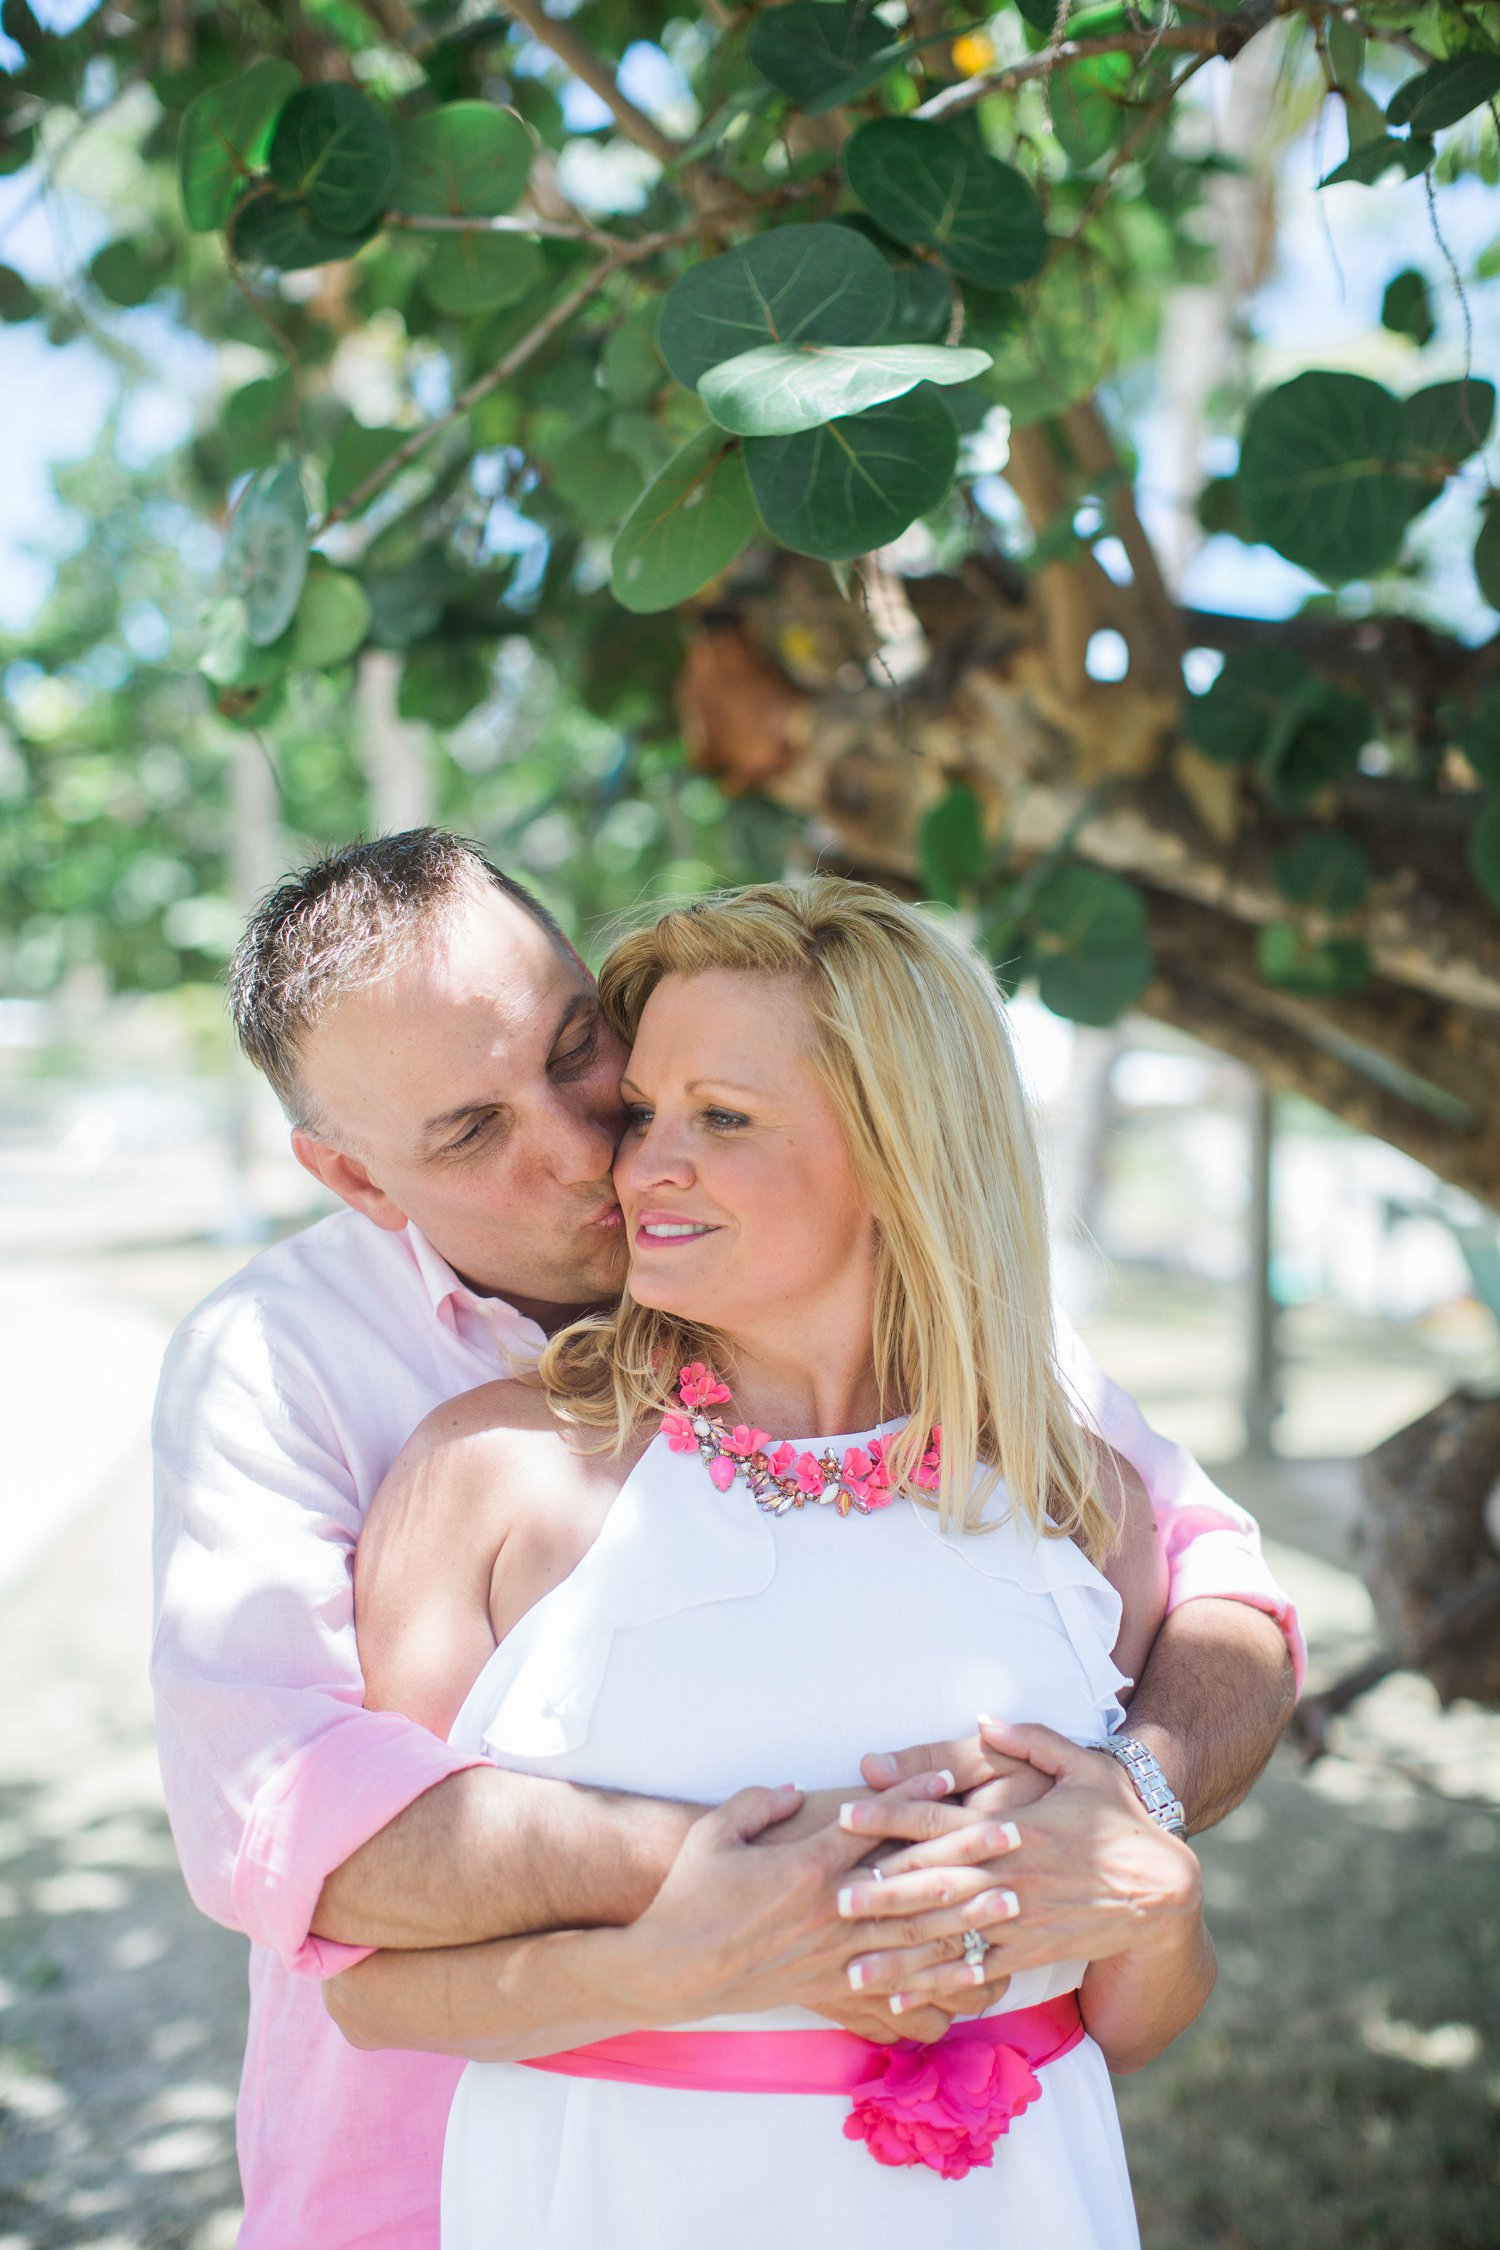 Vow renewal couple's photography session with Savanah Loftus.